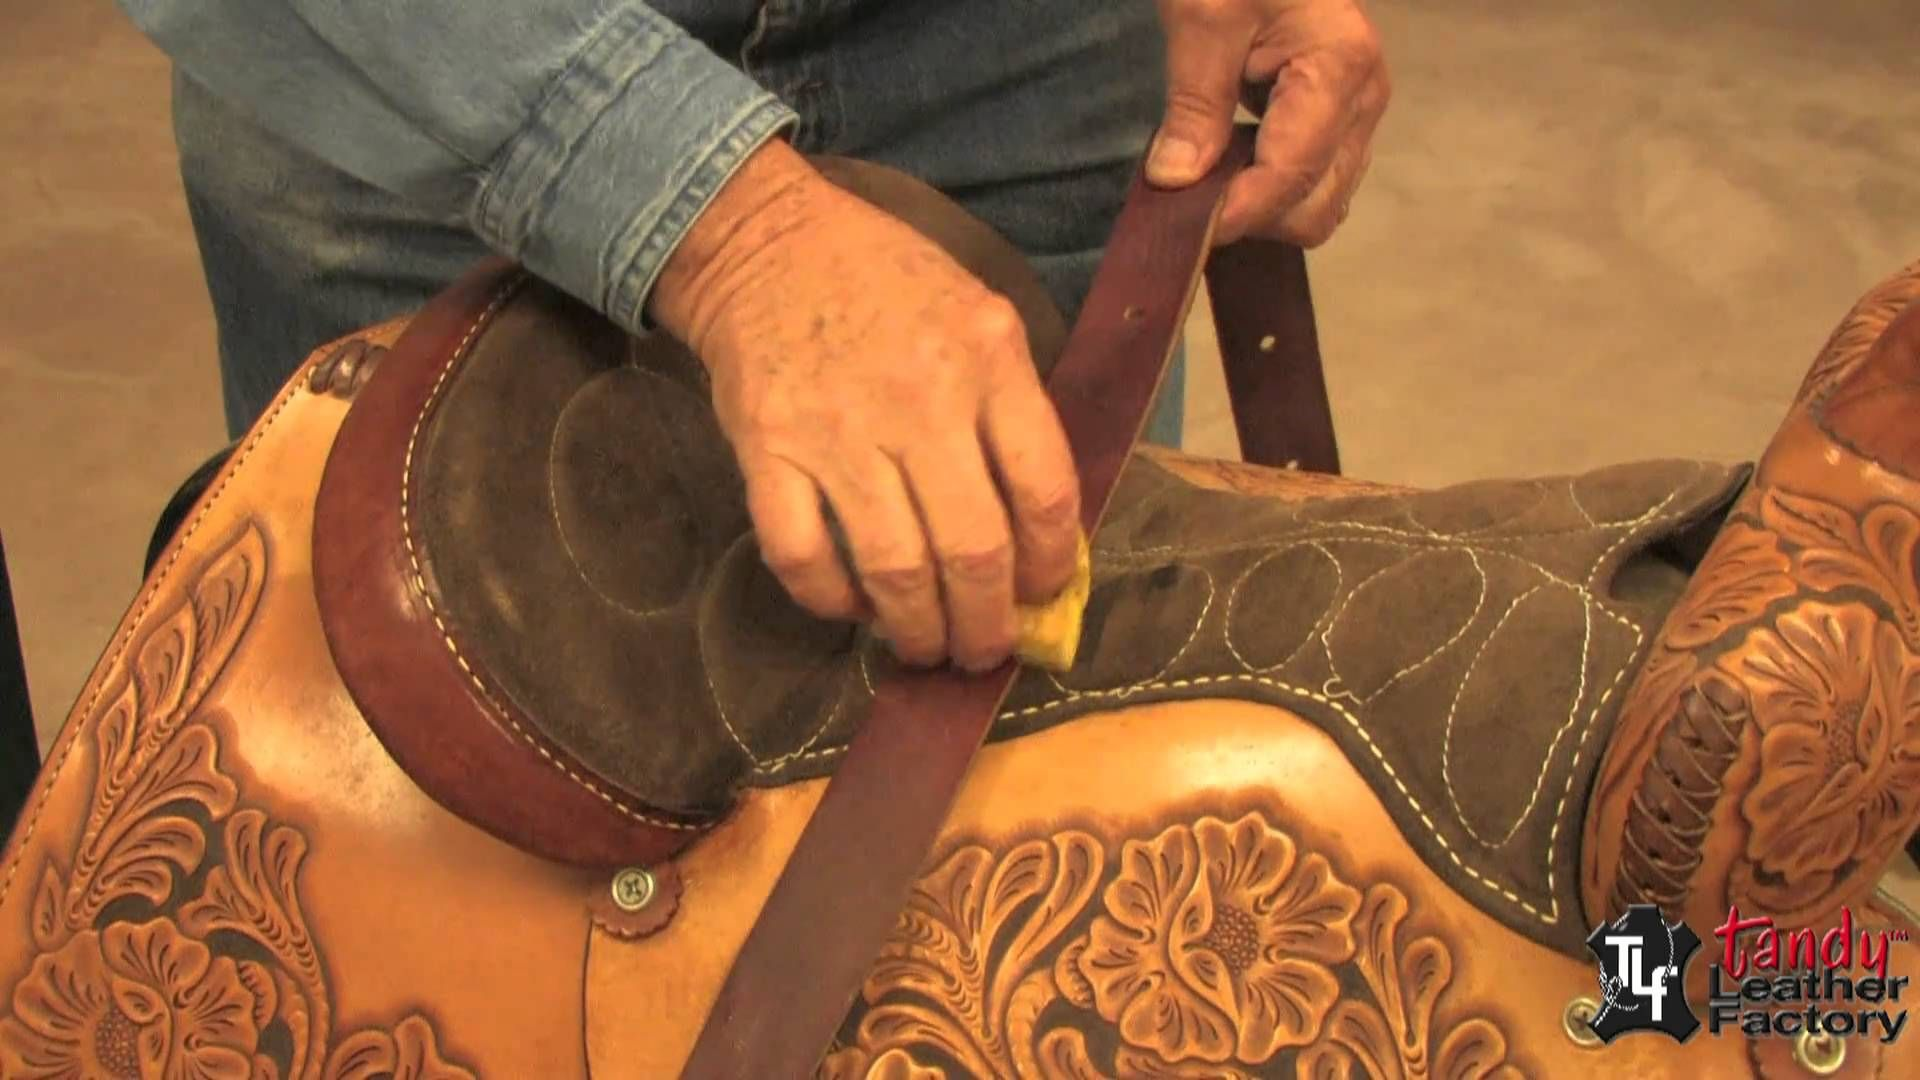 George Hurst shows you how to Remove Mold and Mildew from leather in this  leathercraft video by Tandy Leather. 049eadb67ac24